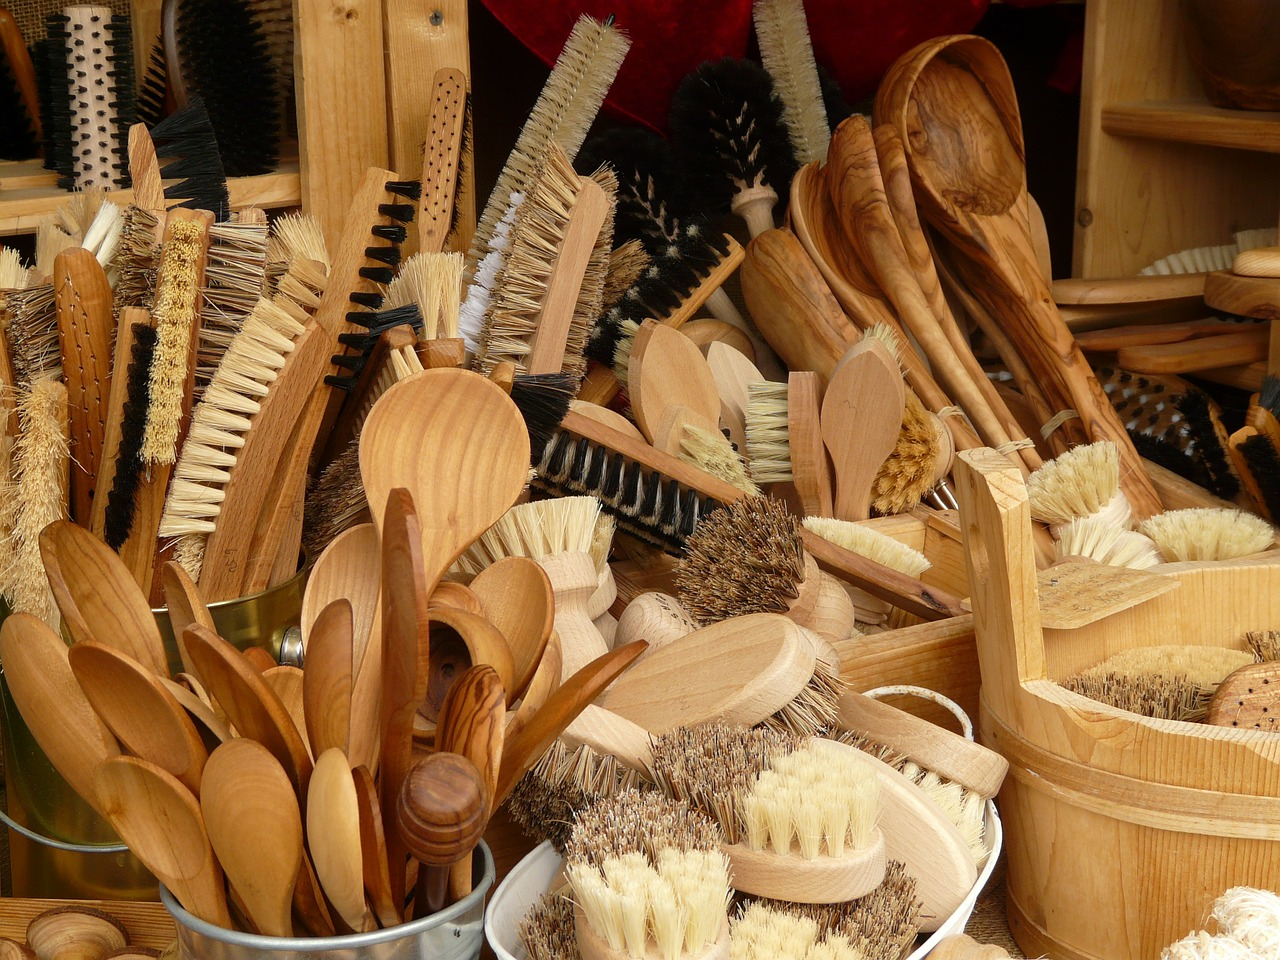 cooking spoon brushes articles of wood free photo